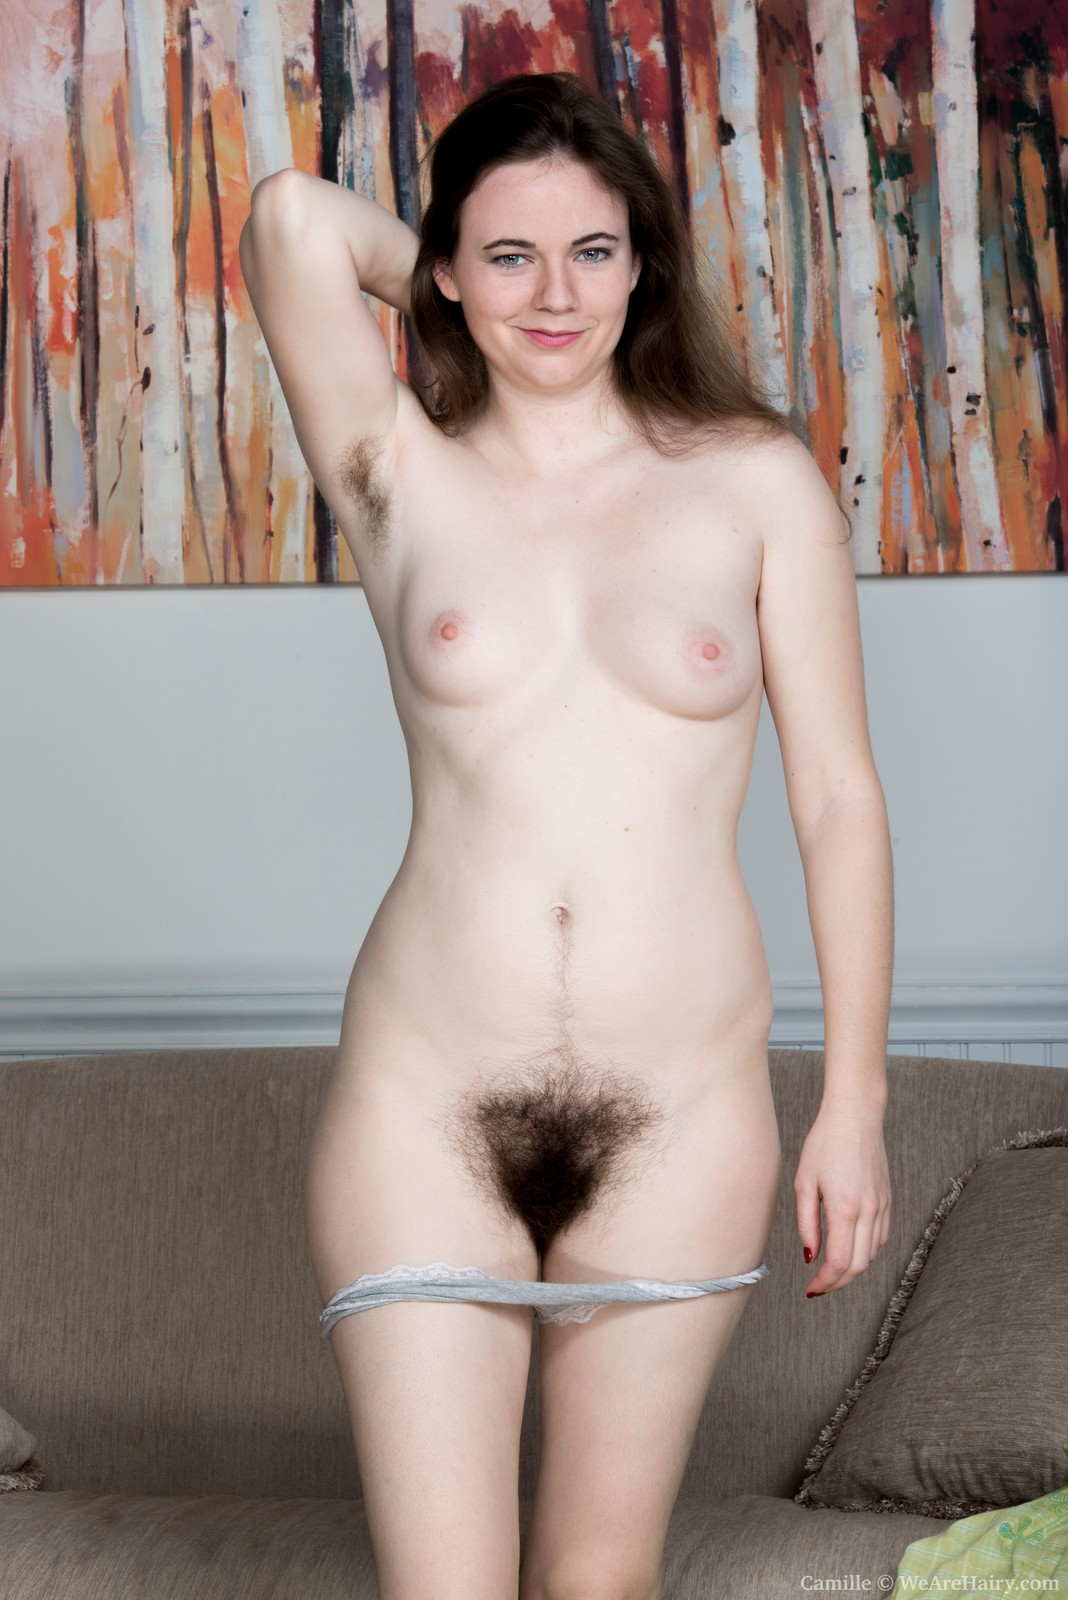 Very Hairy Nude Girls